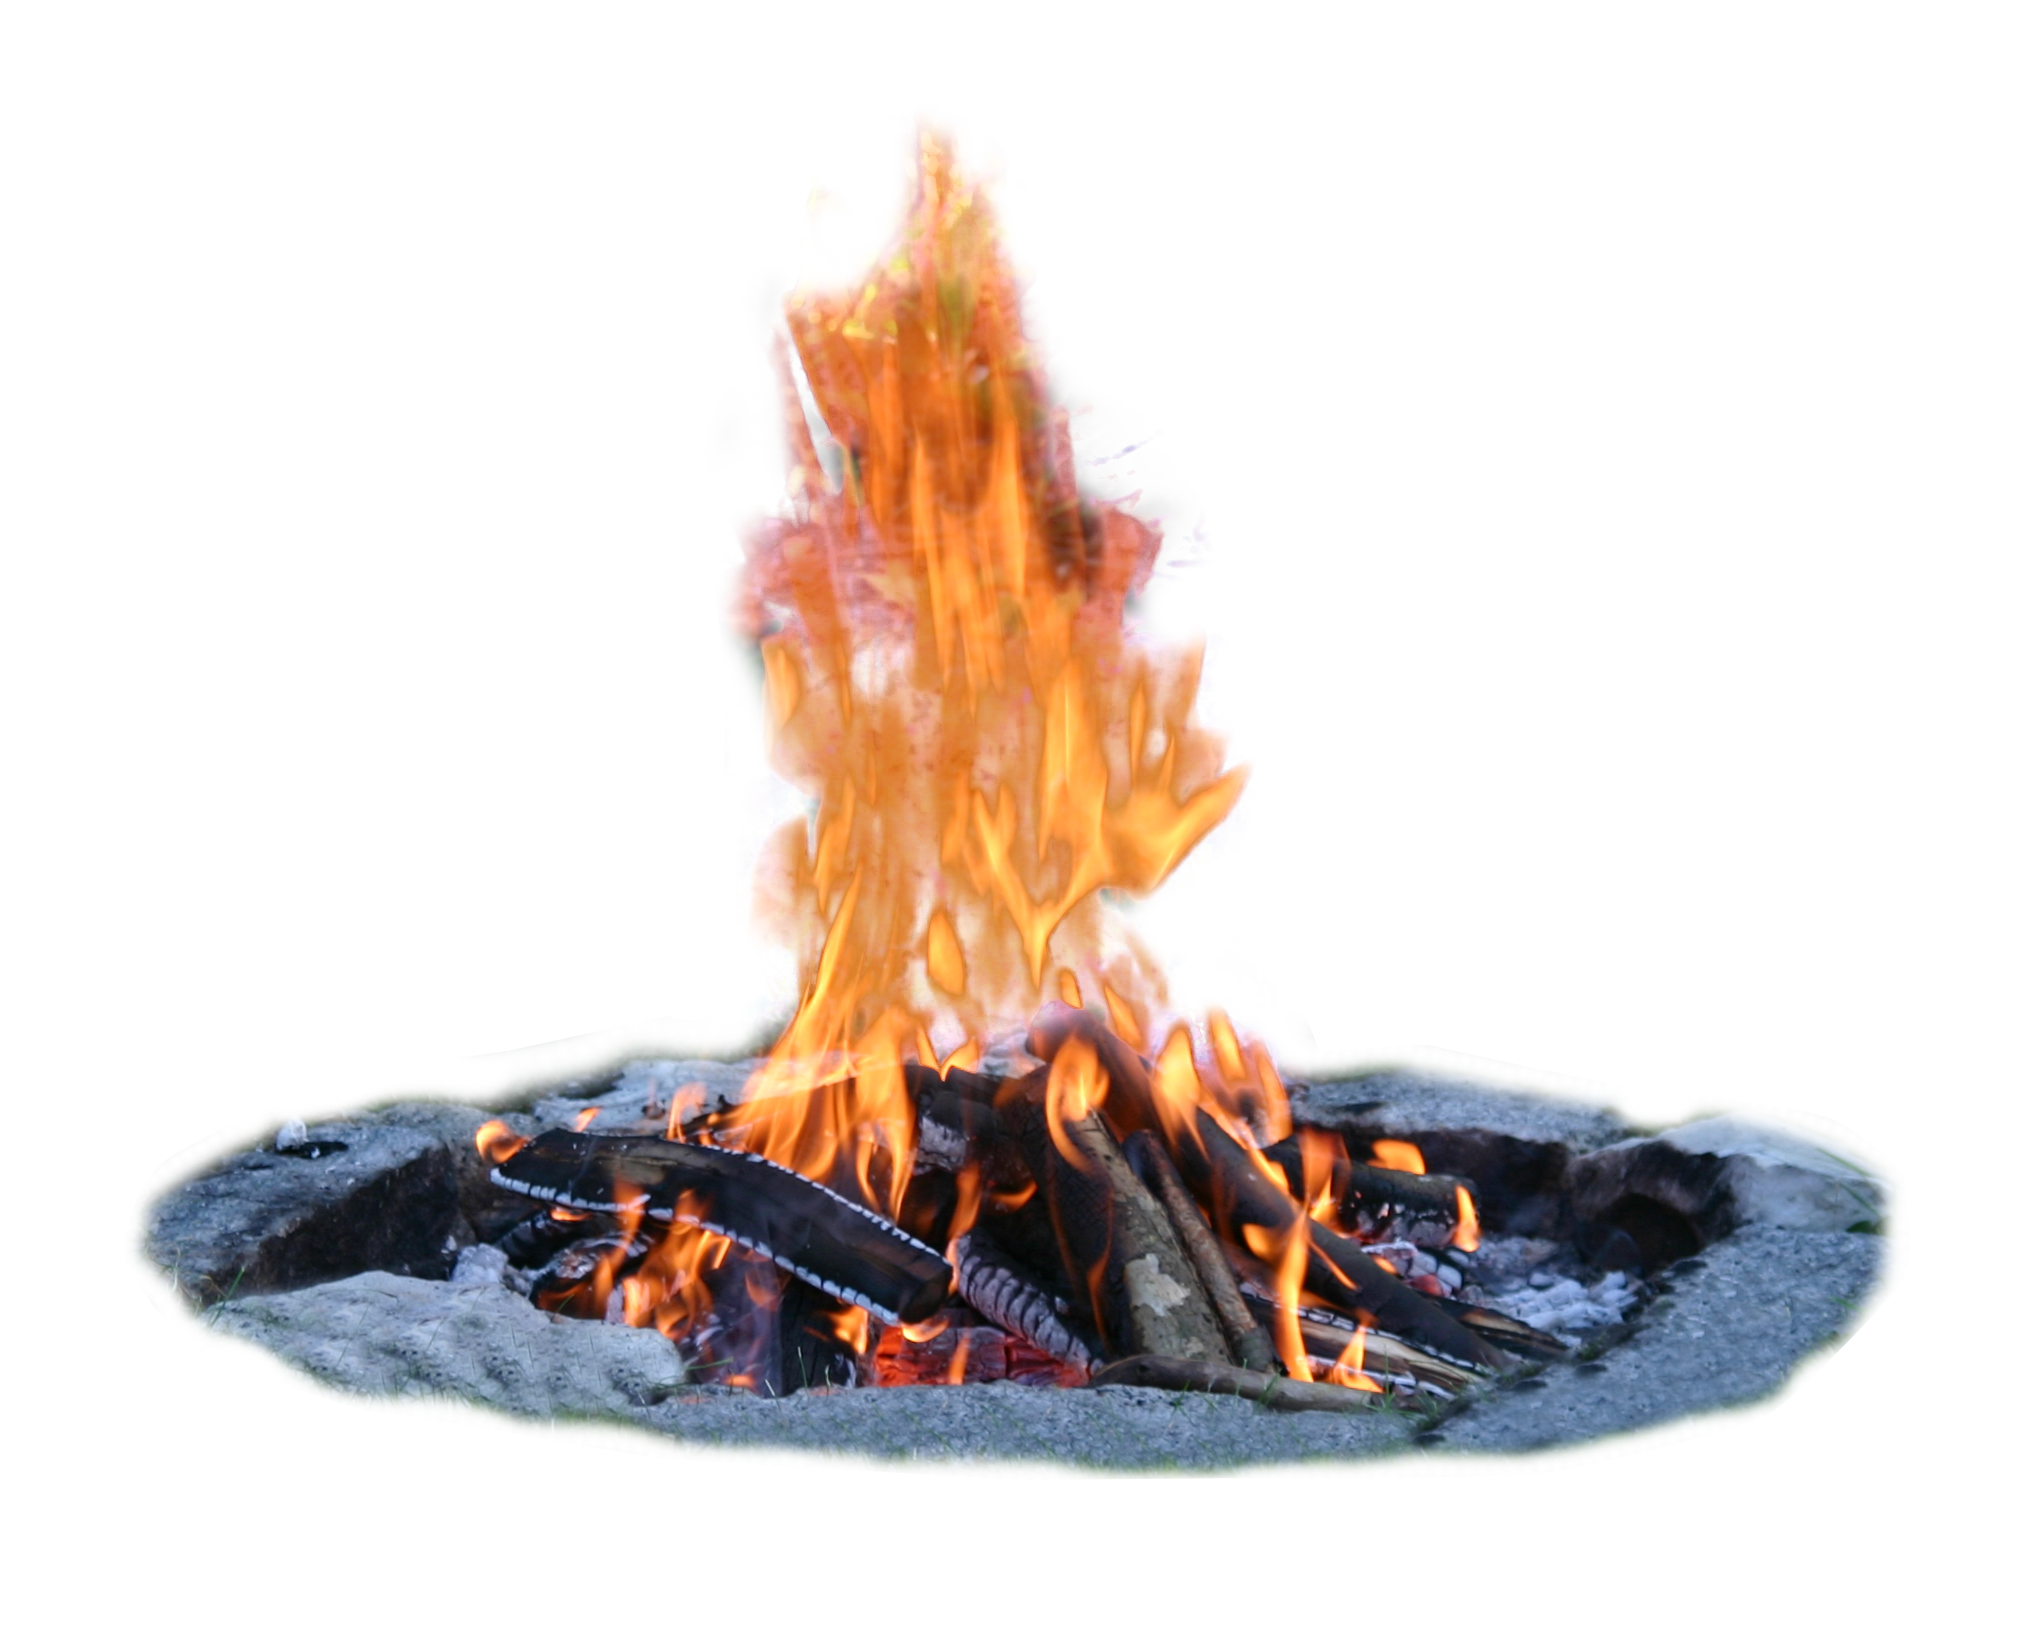 Campfire PNG Image